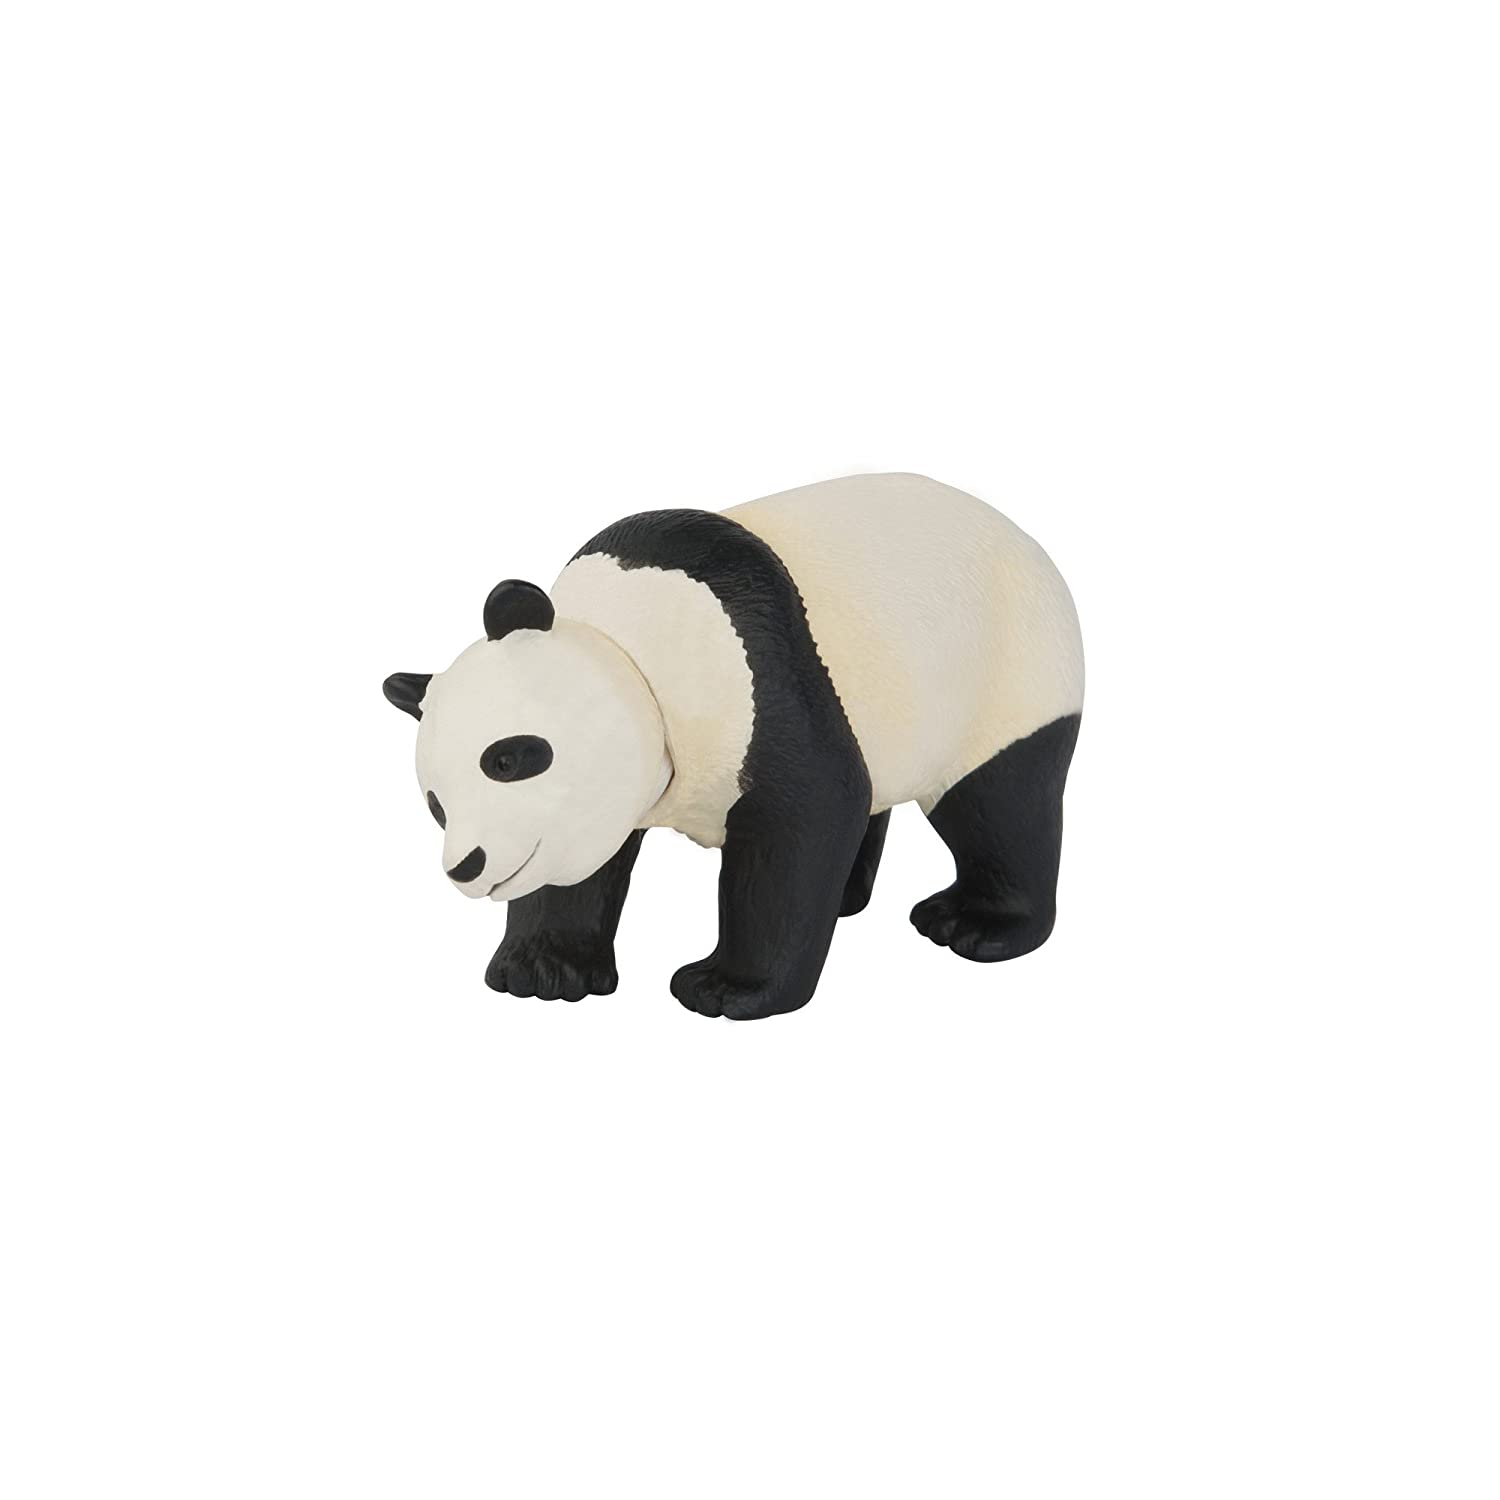 a96709a9aede6 Ania Animal Pack, Panda With Babies